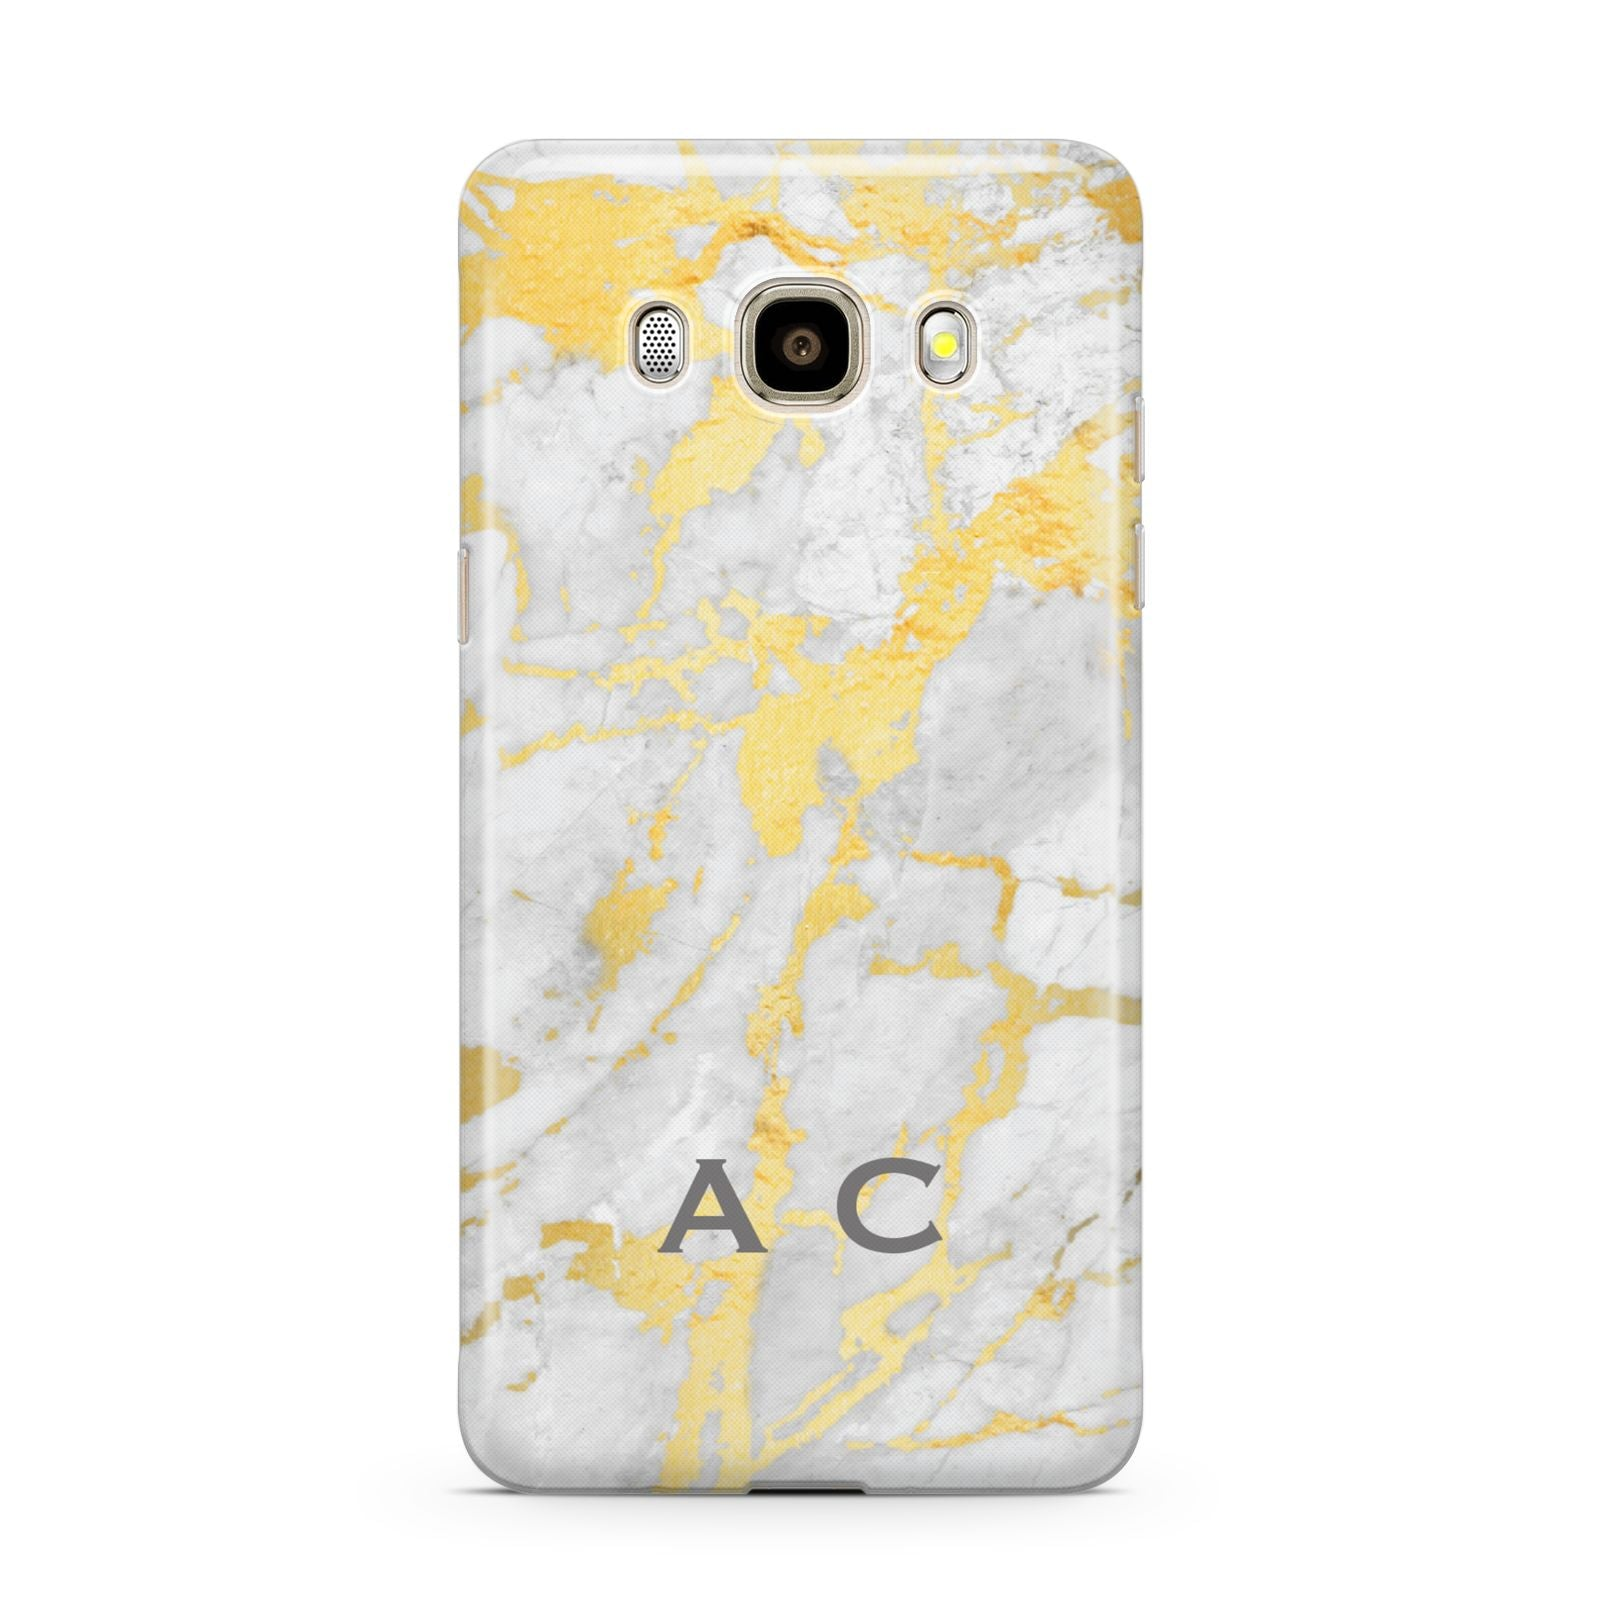 Gold Marble Initials Personalised Samsung Galaxy J7 2016 Case on gold phone